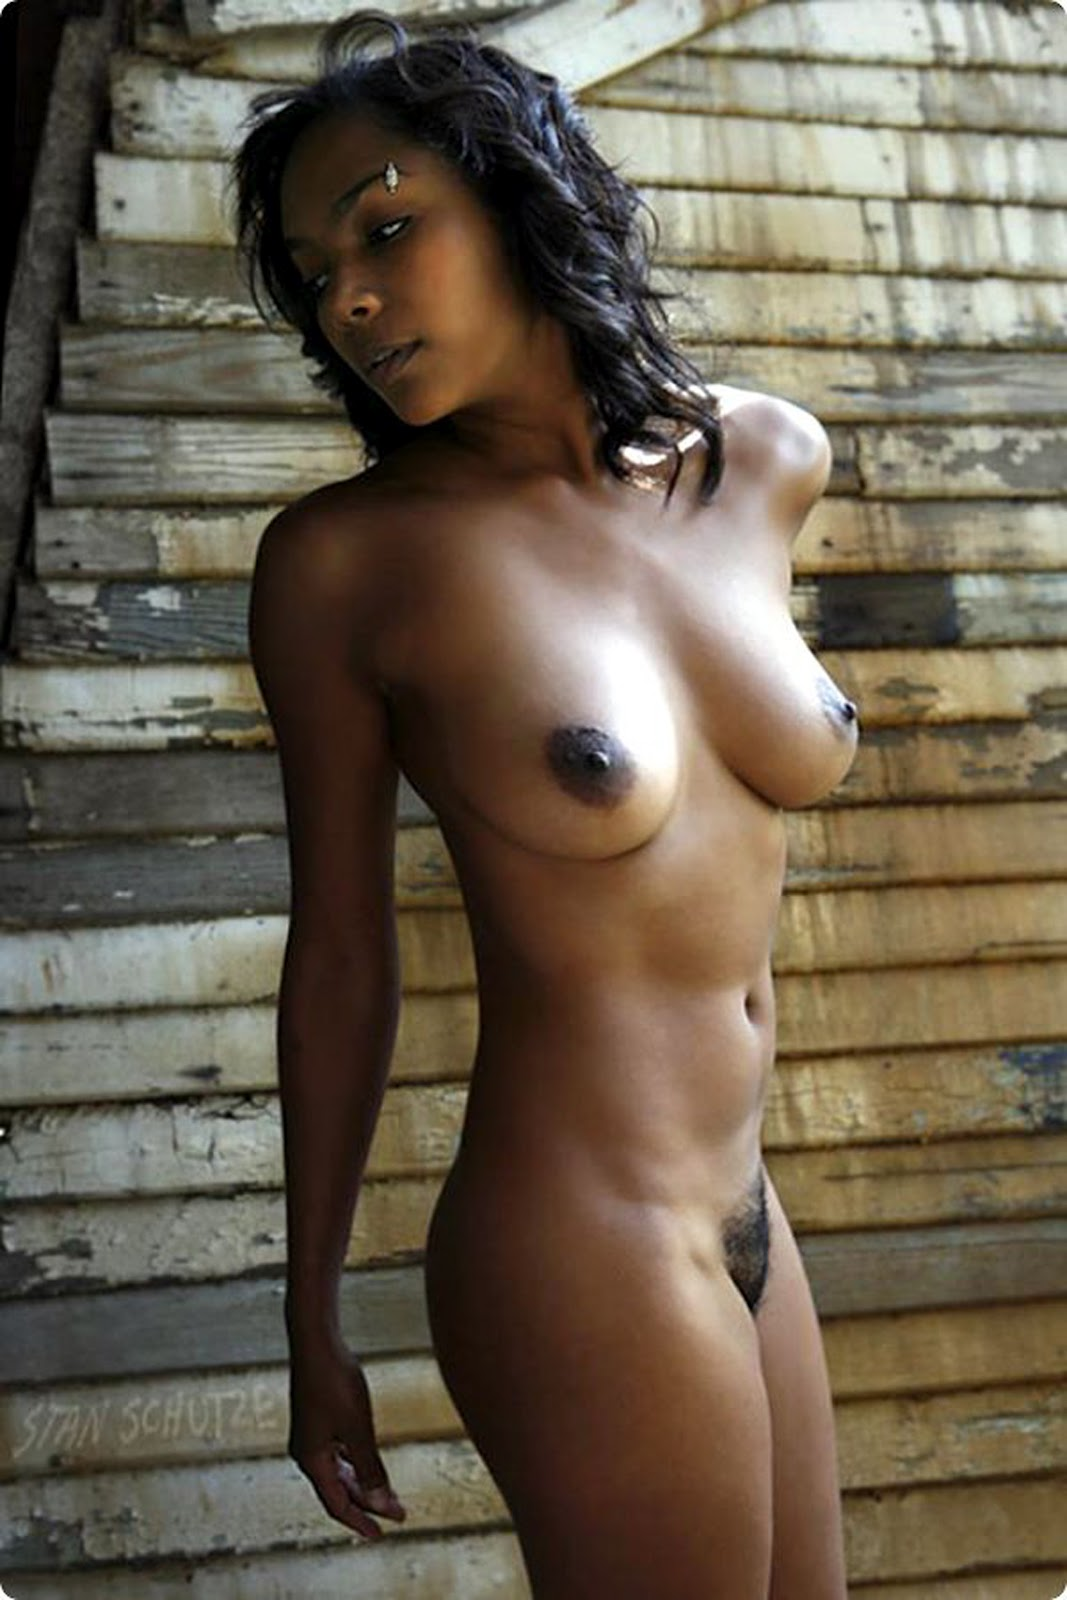 haitian-model-nude-photos